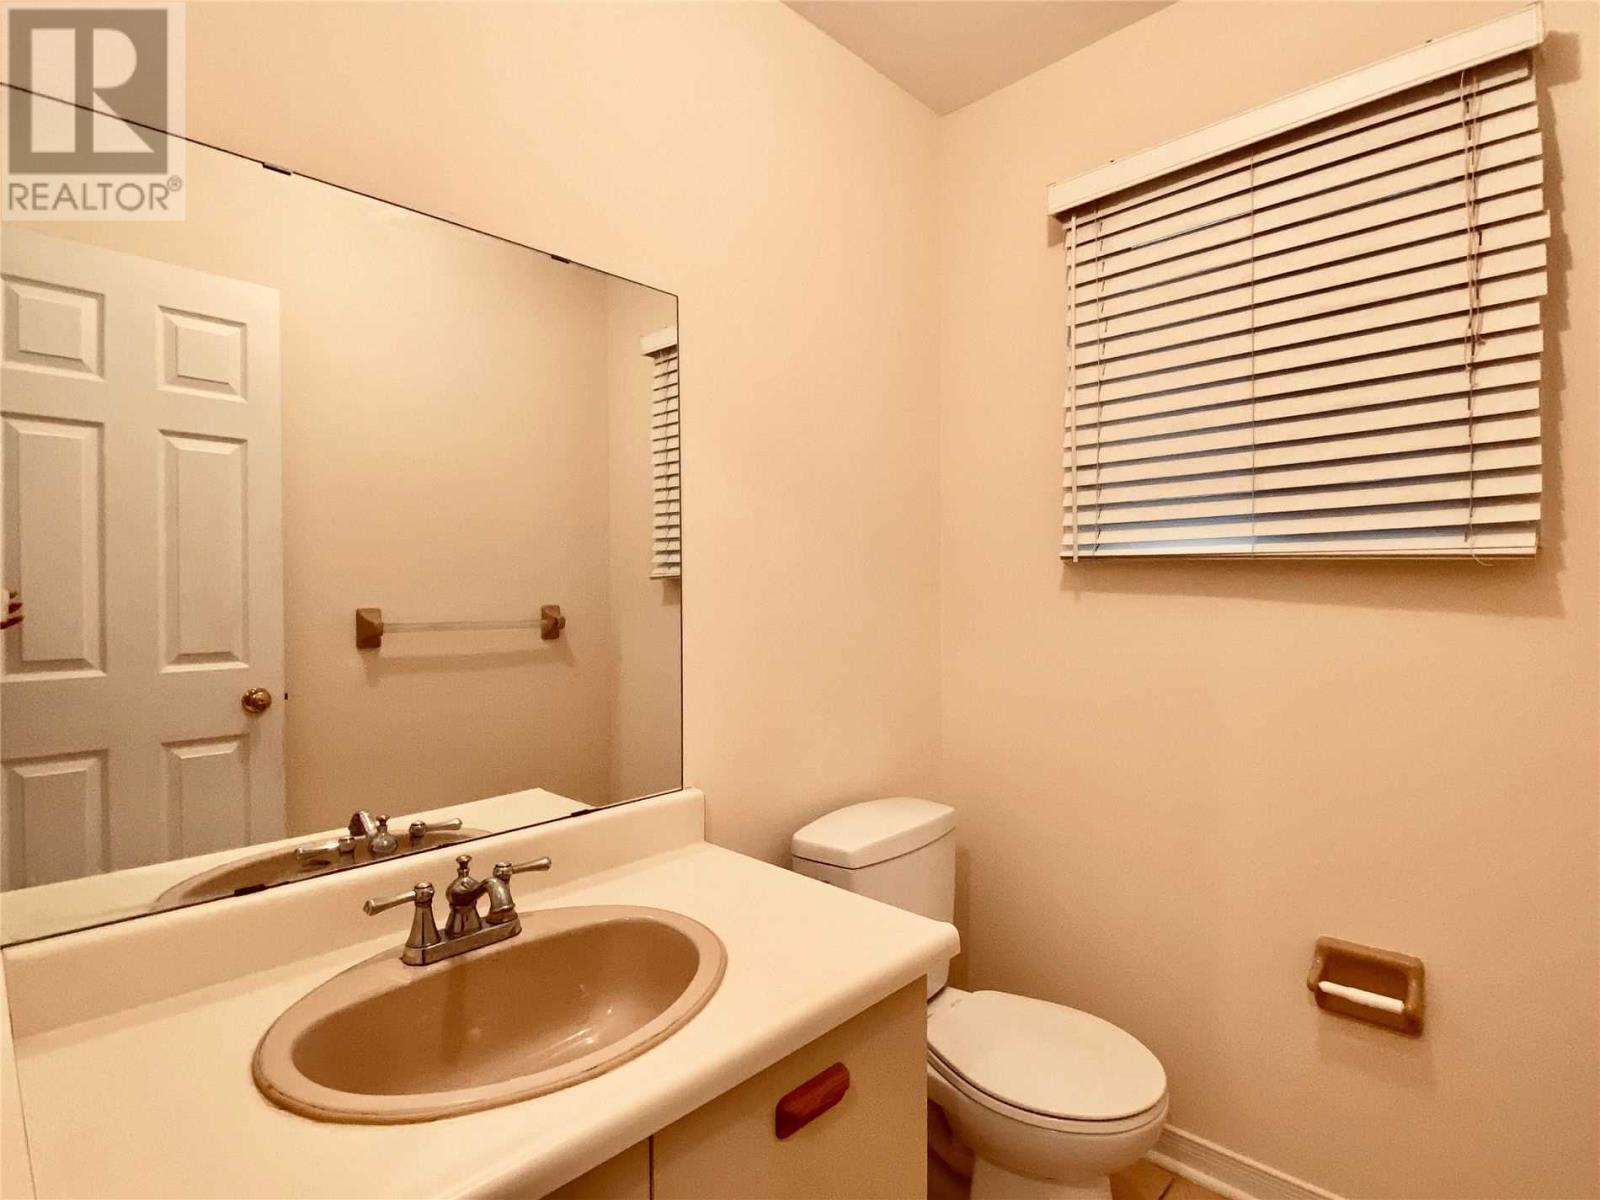 2547 Dinning Crt, Mississauga, Ontario  L5M 5E7 - Photo 10 - W4640786